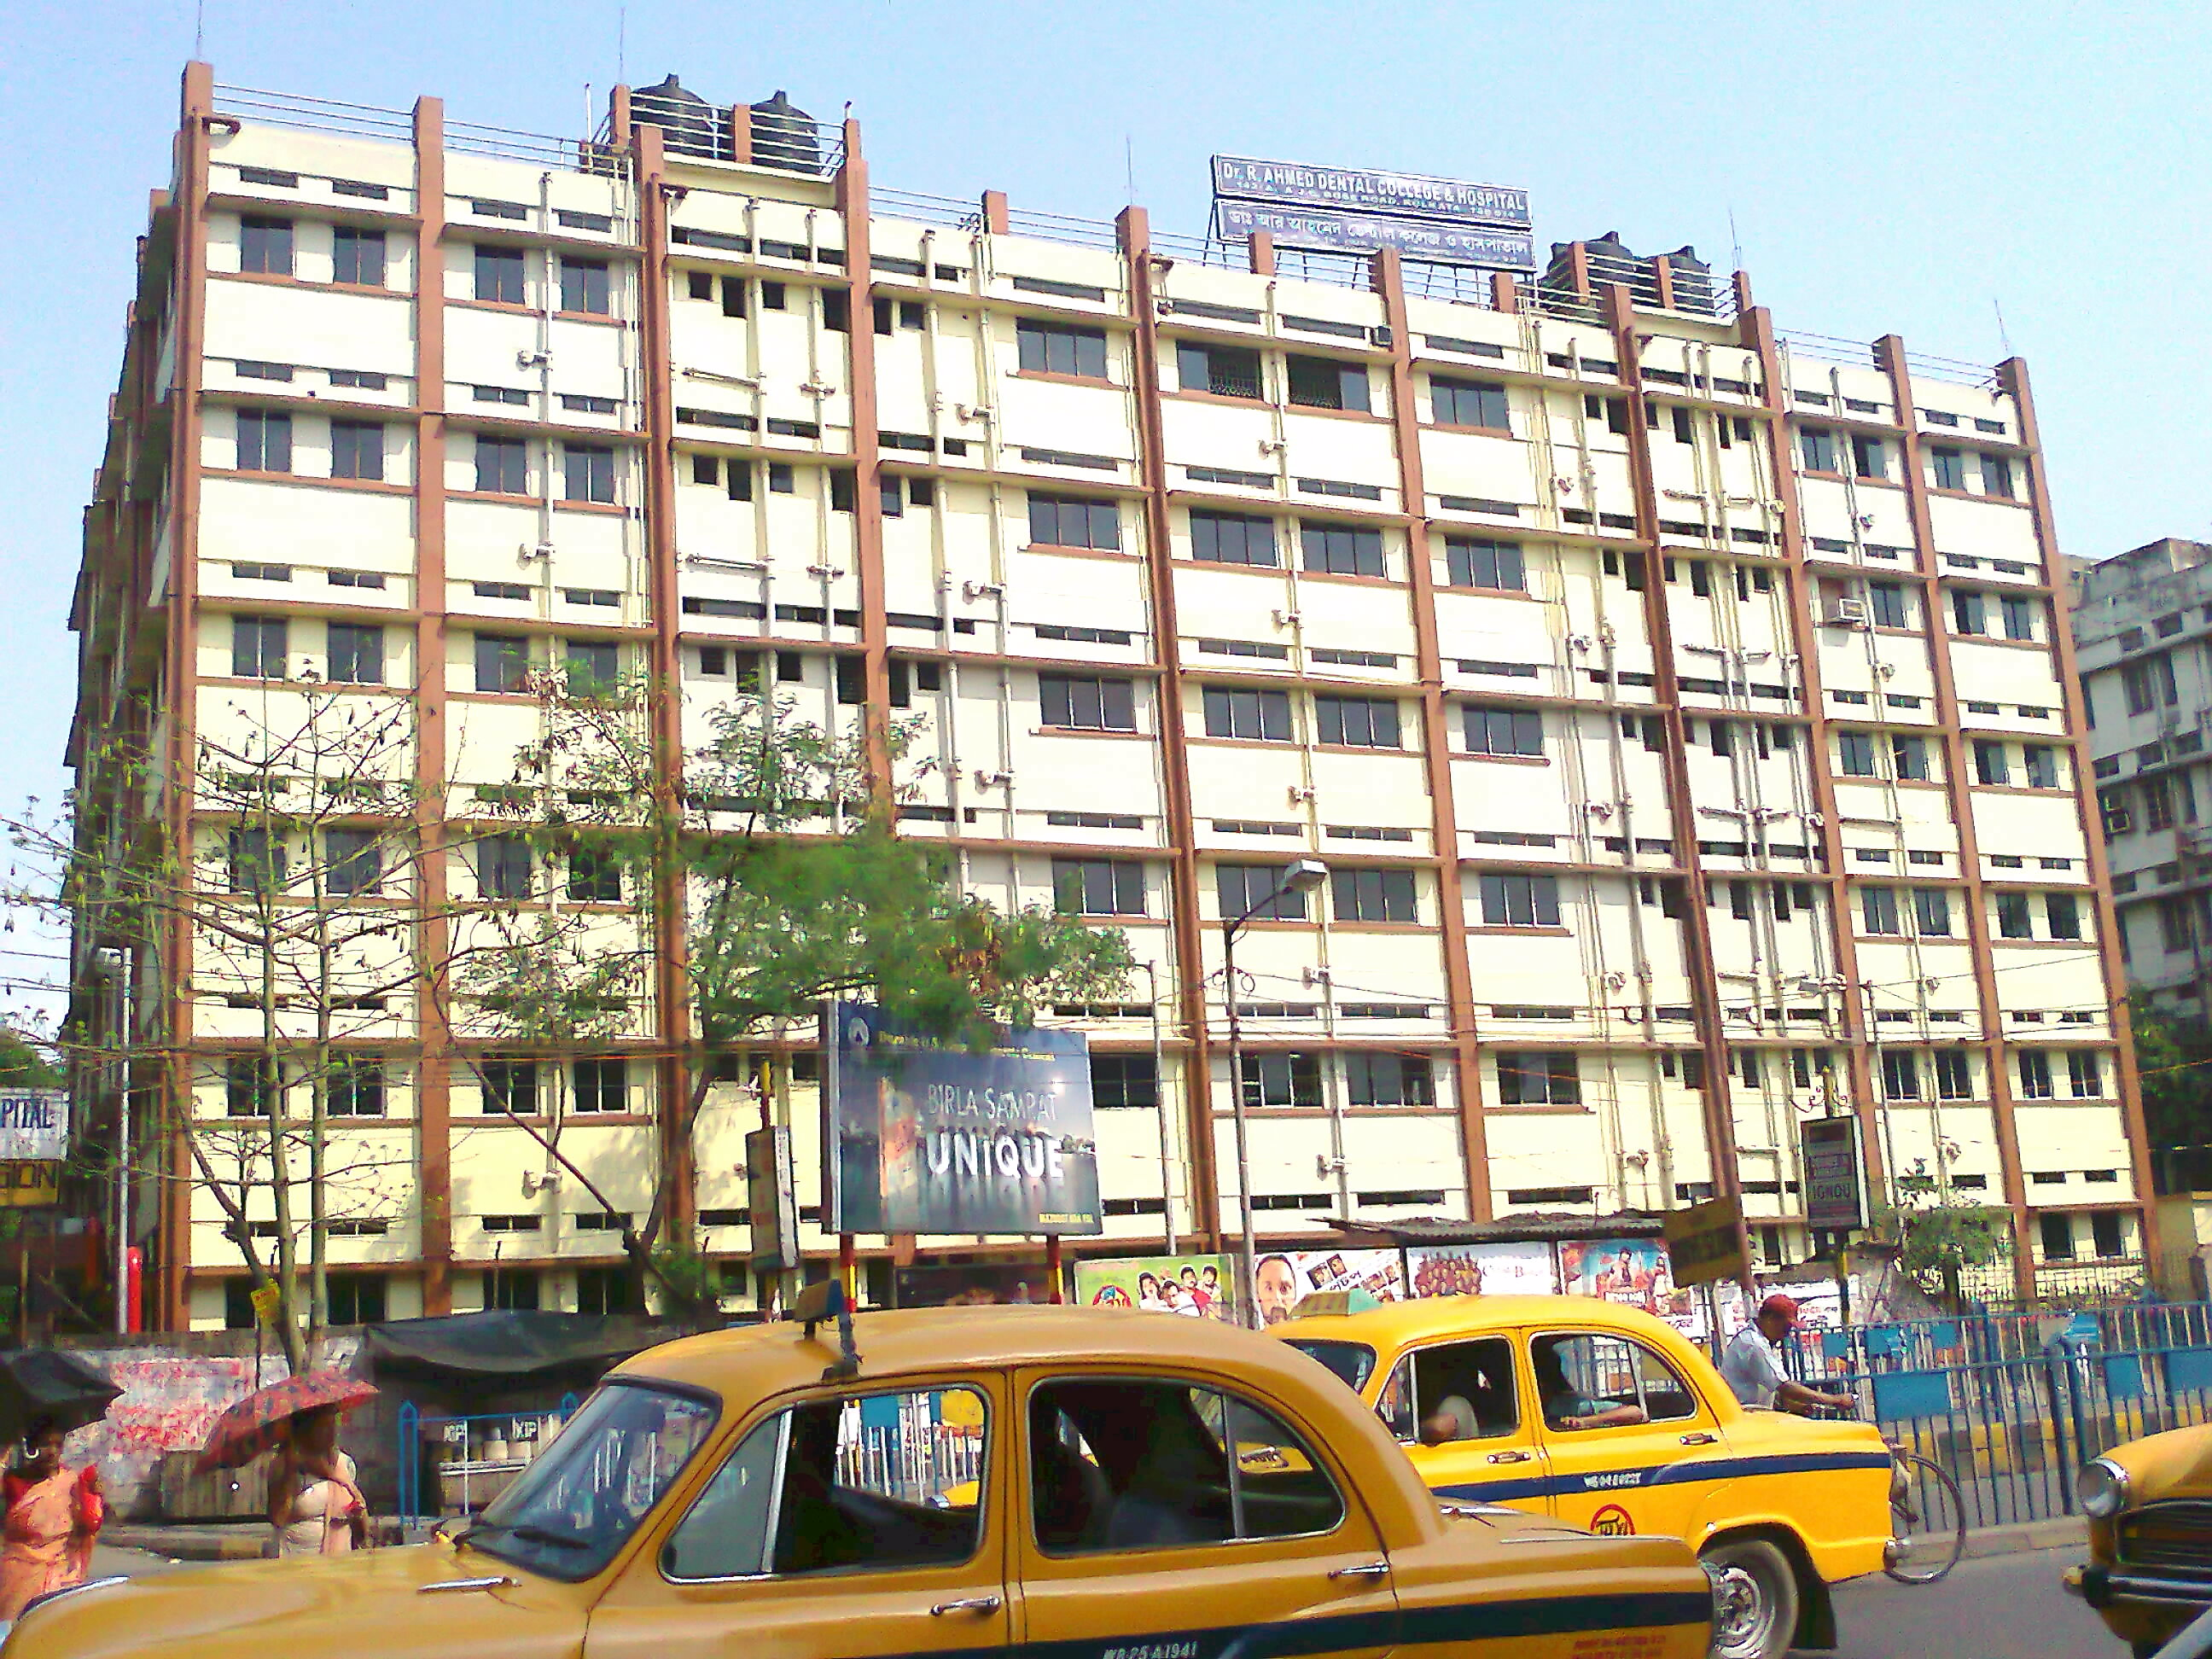 List of dental colleges in India - Wikipedia